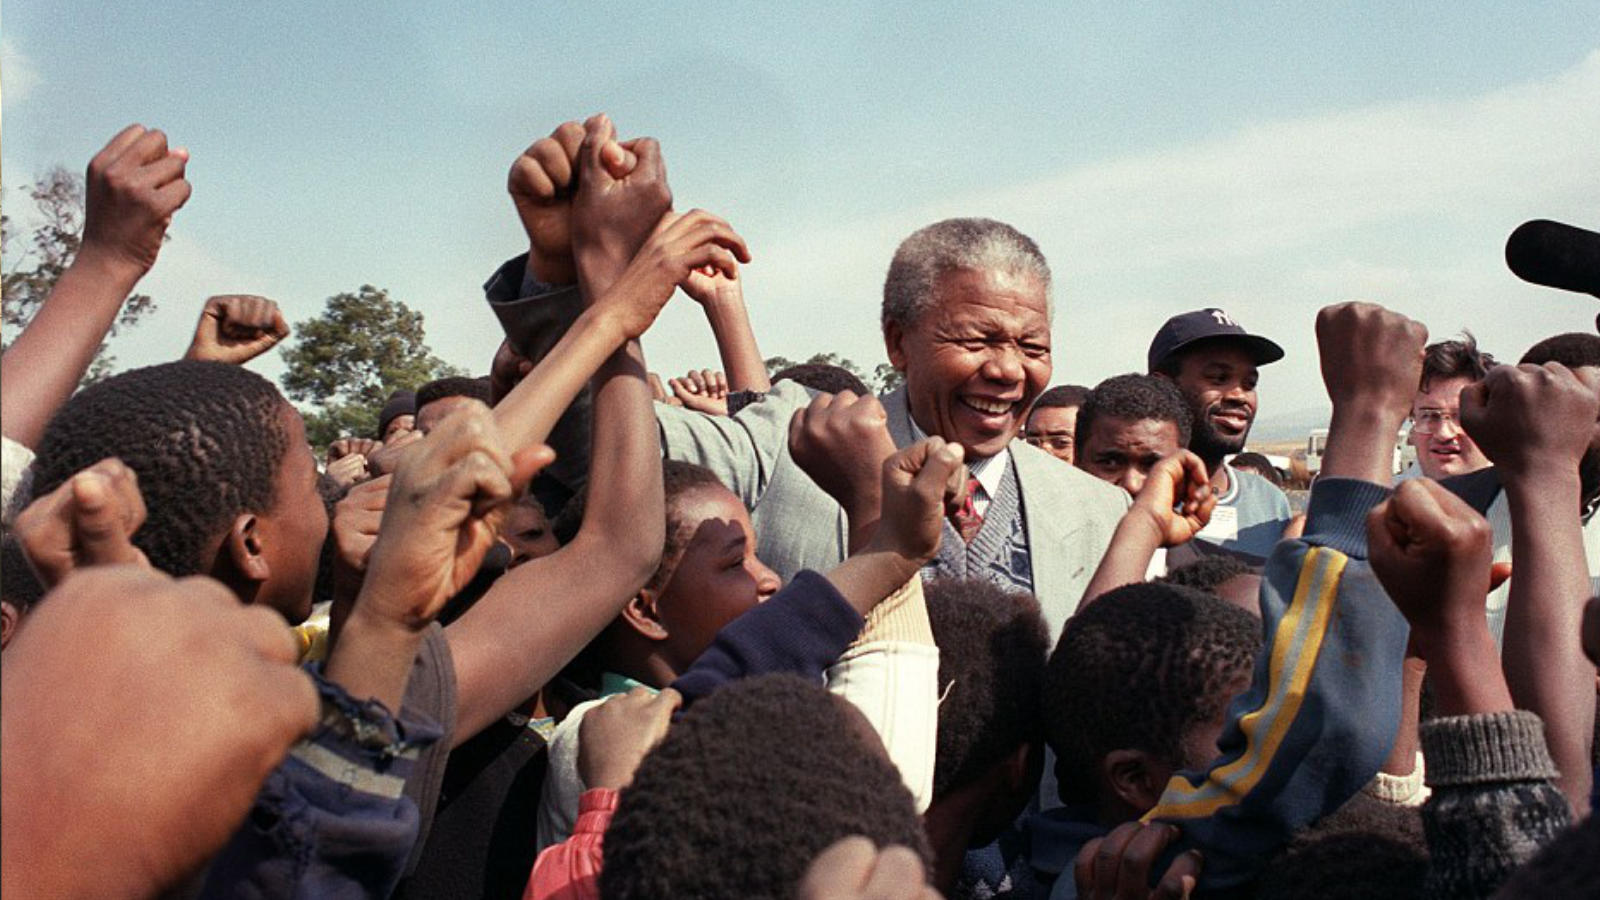 Nelson Mandela with young people in a crowd. Sun is shining.